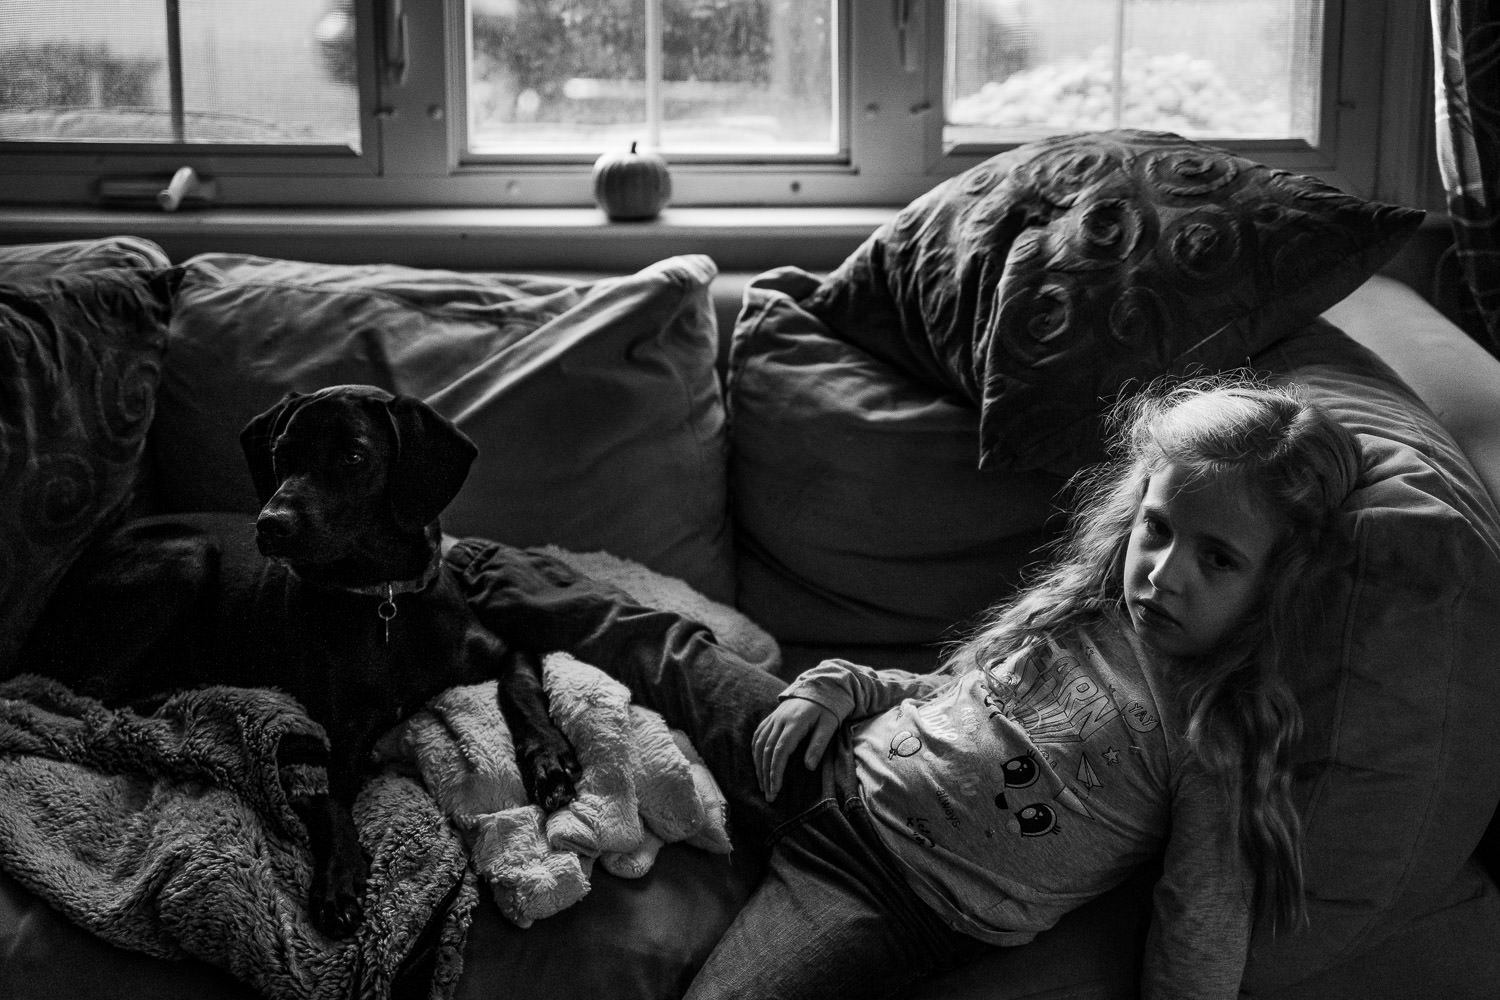 A little girl lies on the couch with her dog.